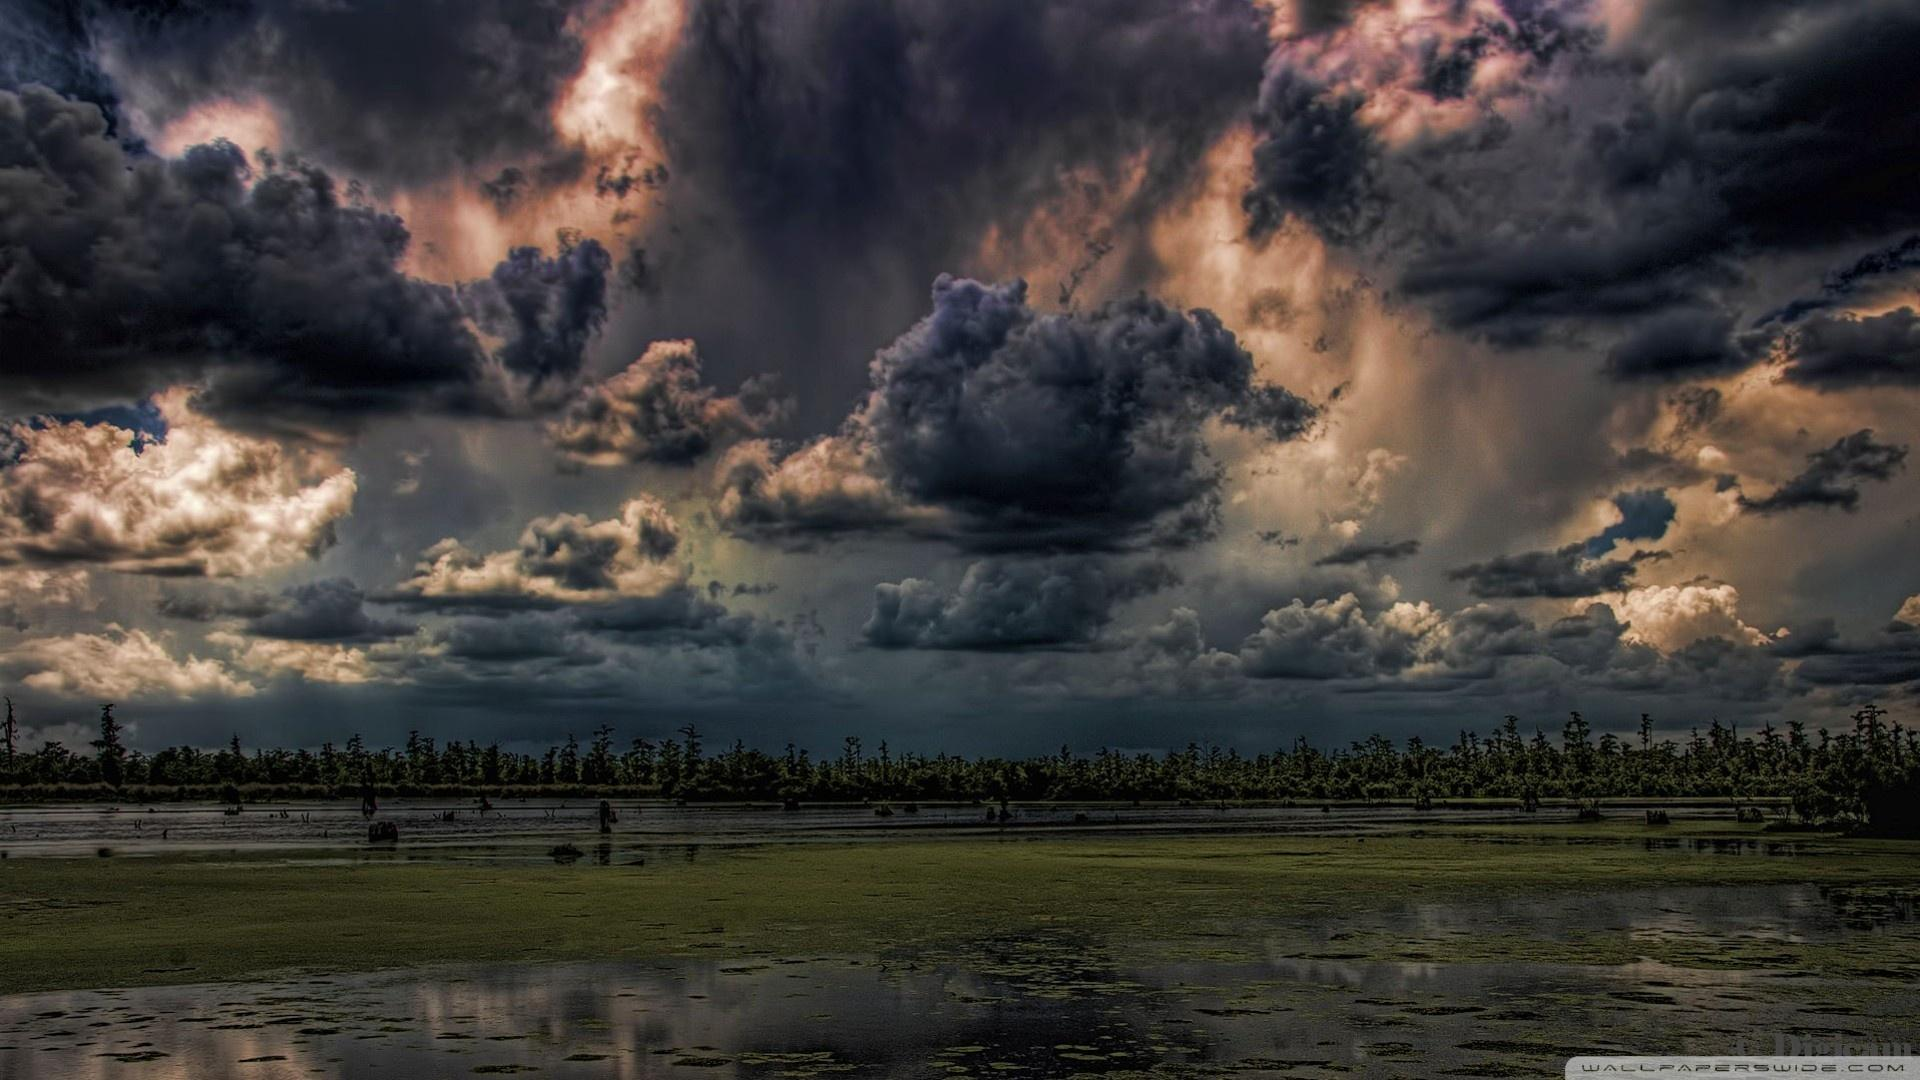 Mean Skies Hdr wallpaper 1920x1080